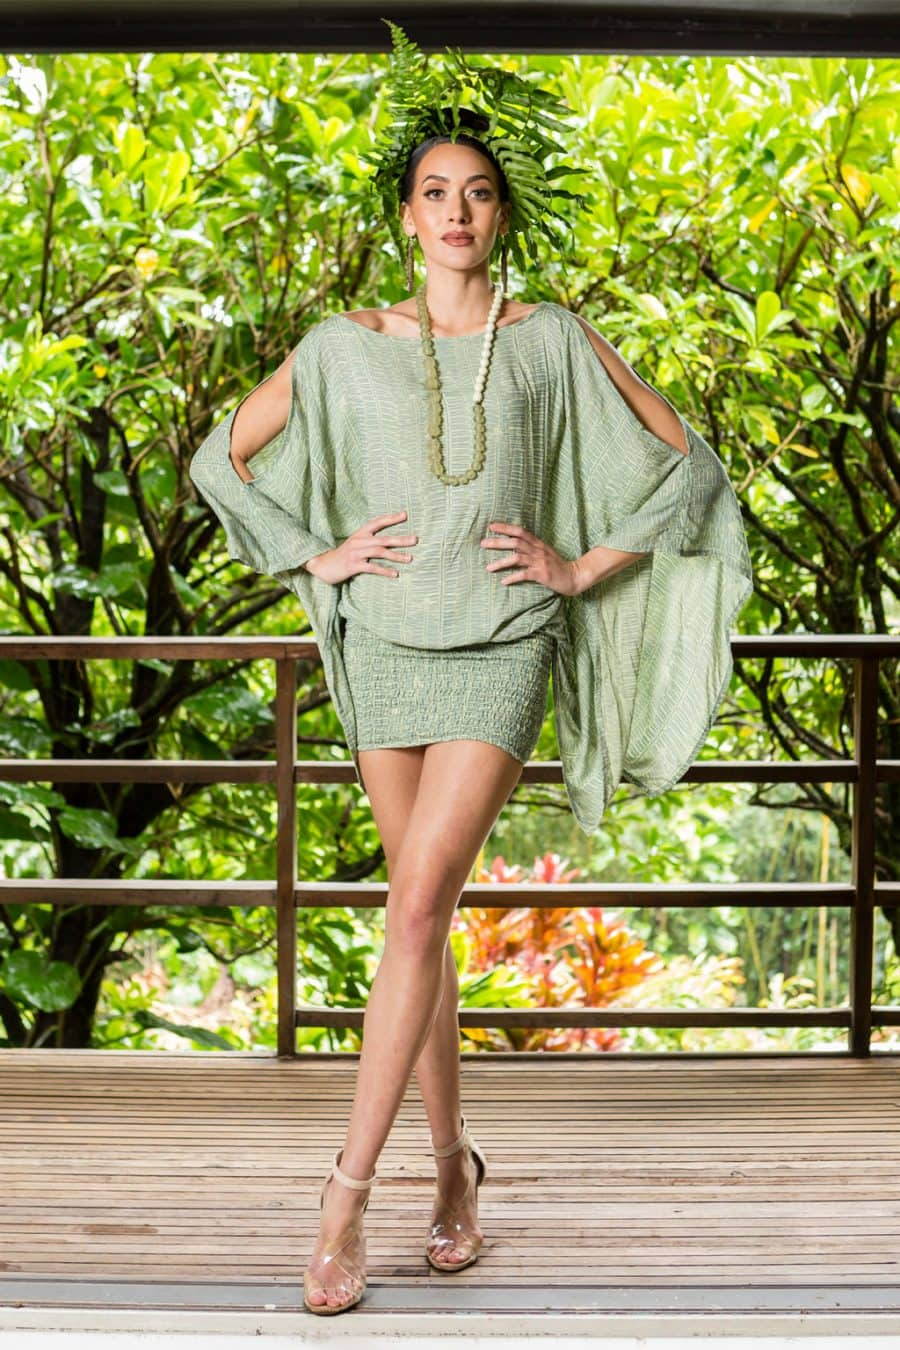 Model wearing Melia Top in Lily Pad Margarita Kupukupu Pattern